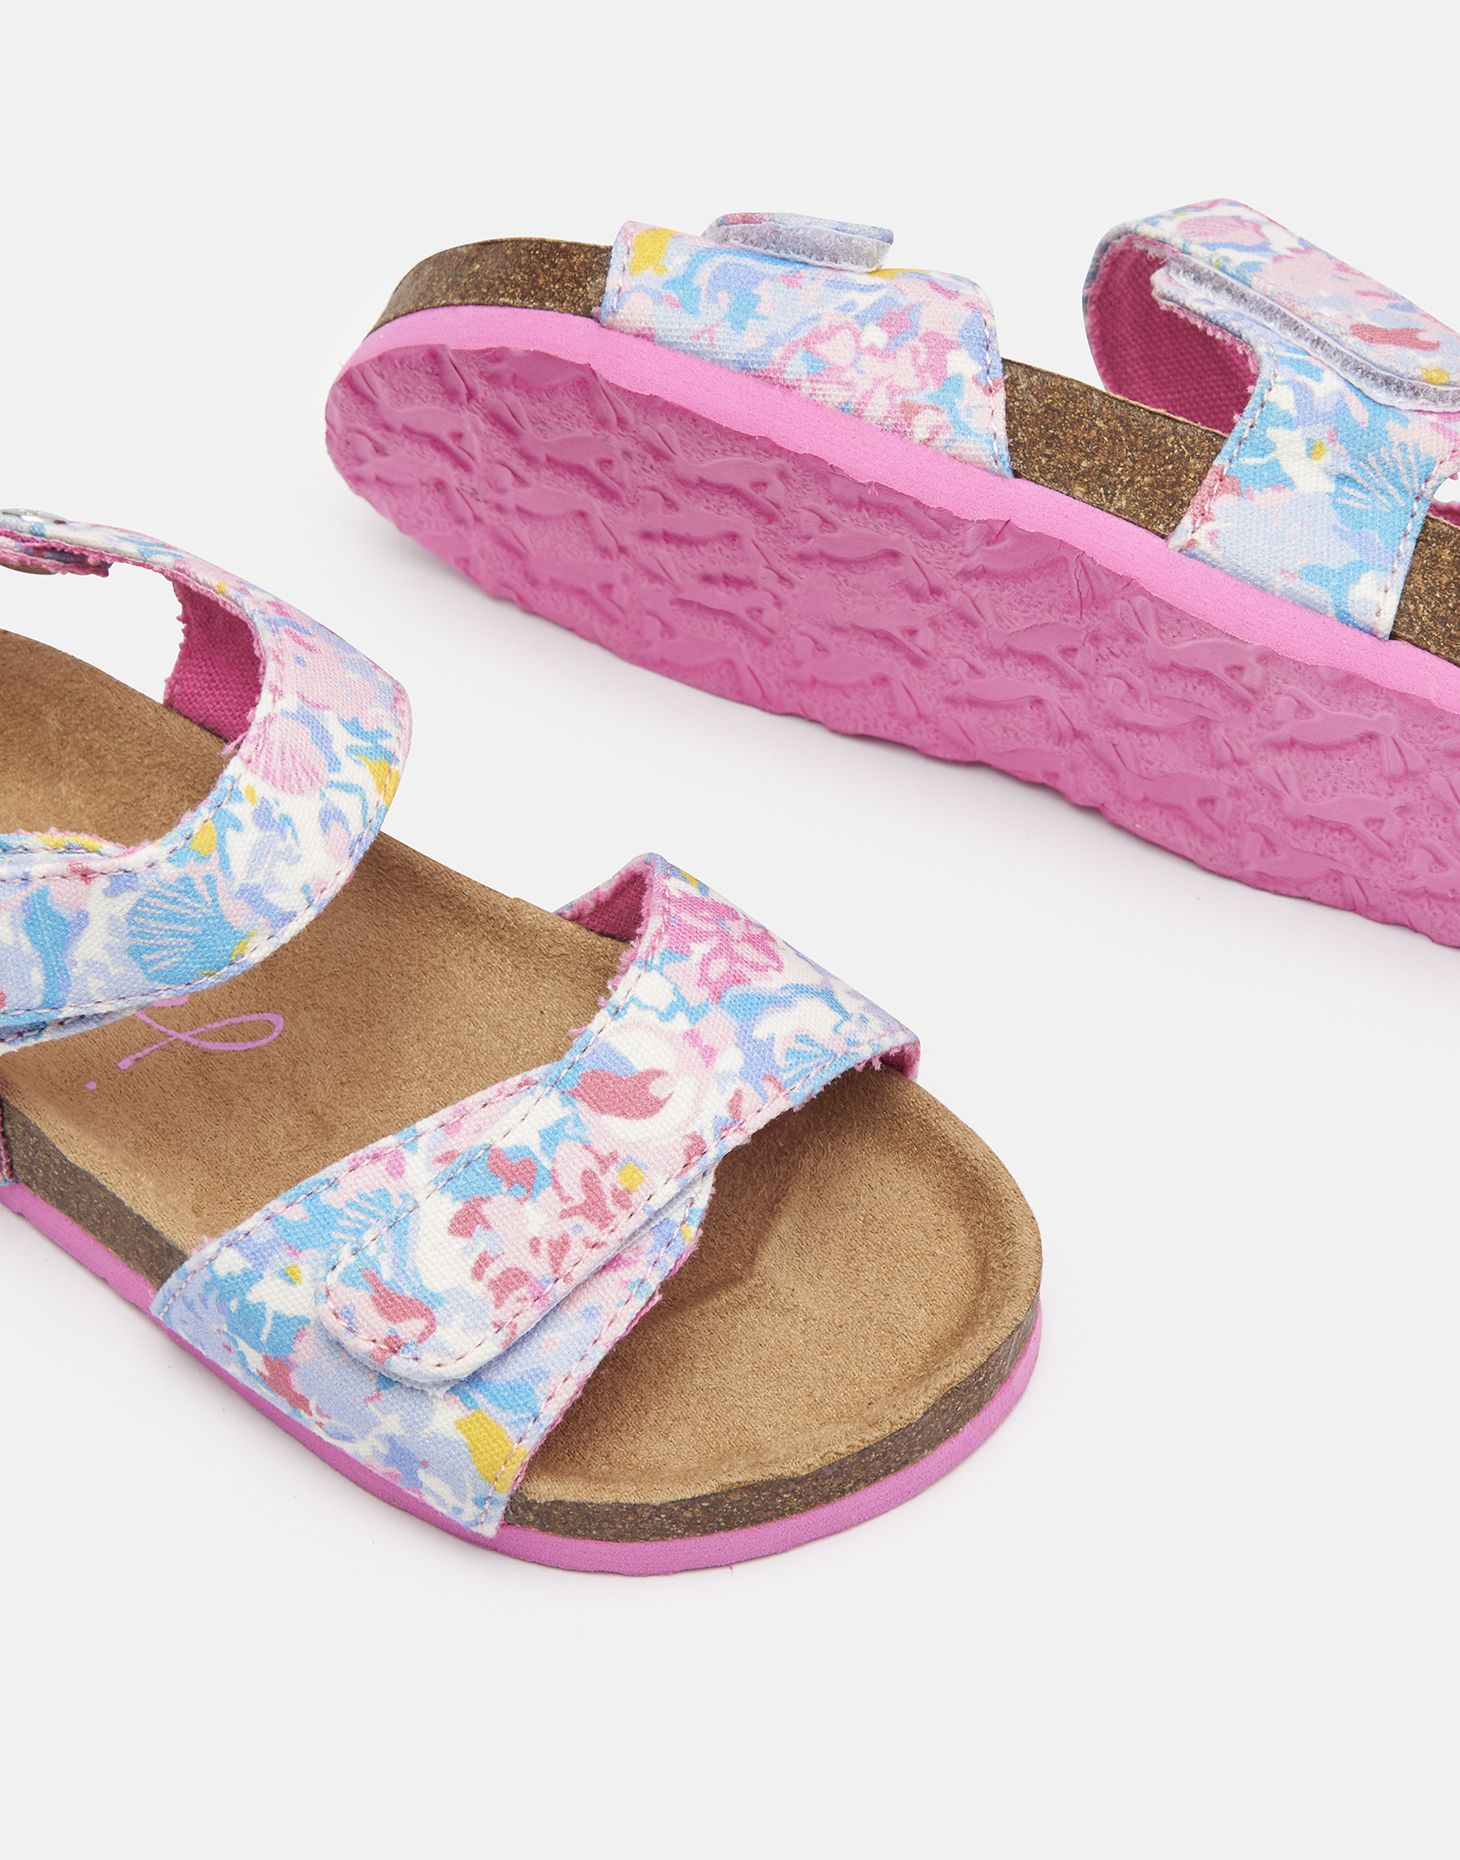 Joules Girls Tippy Toes Strapped Sandal in WHITE MERMAID FLORAL